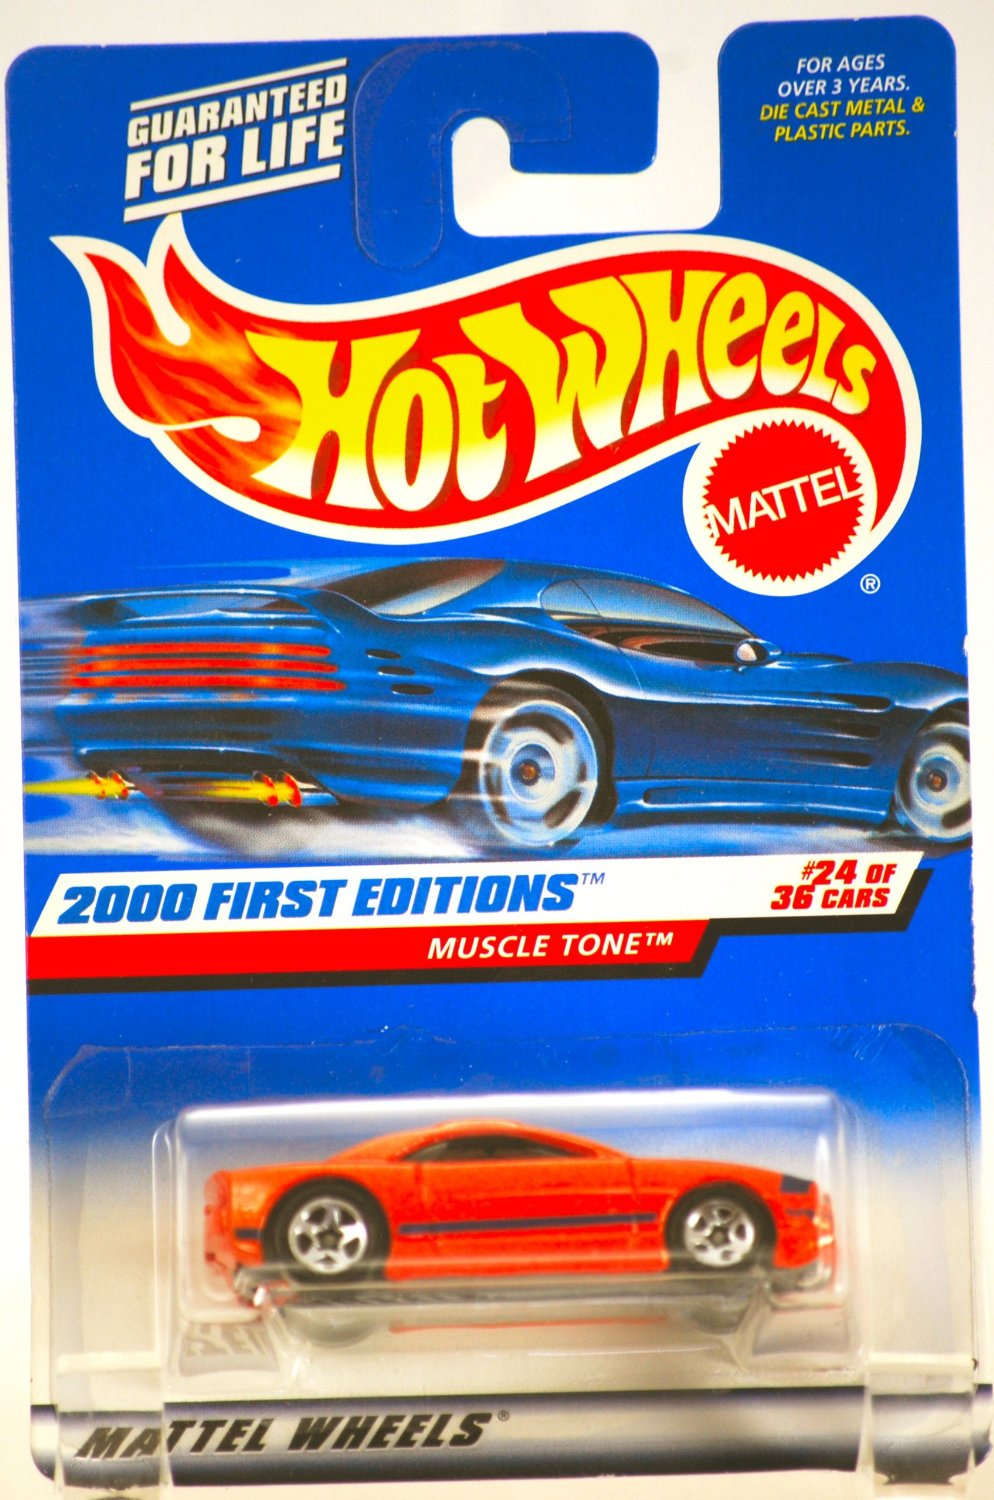 2000 - Mattel / Hot Wheels - Muscle Tone (Fiero: Red) - Pontiac - 2000 First Editions #24 of 36 Cars - 1:64 Scale Die Cast Metal - MOC - Limited Edition - Collectible